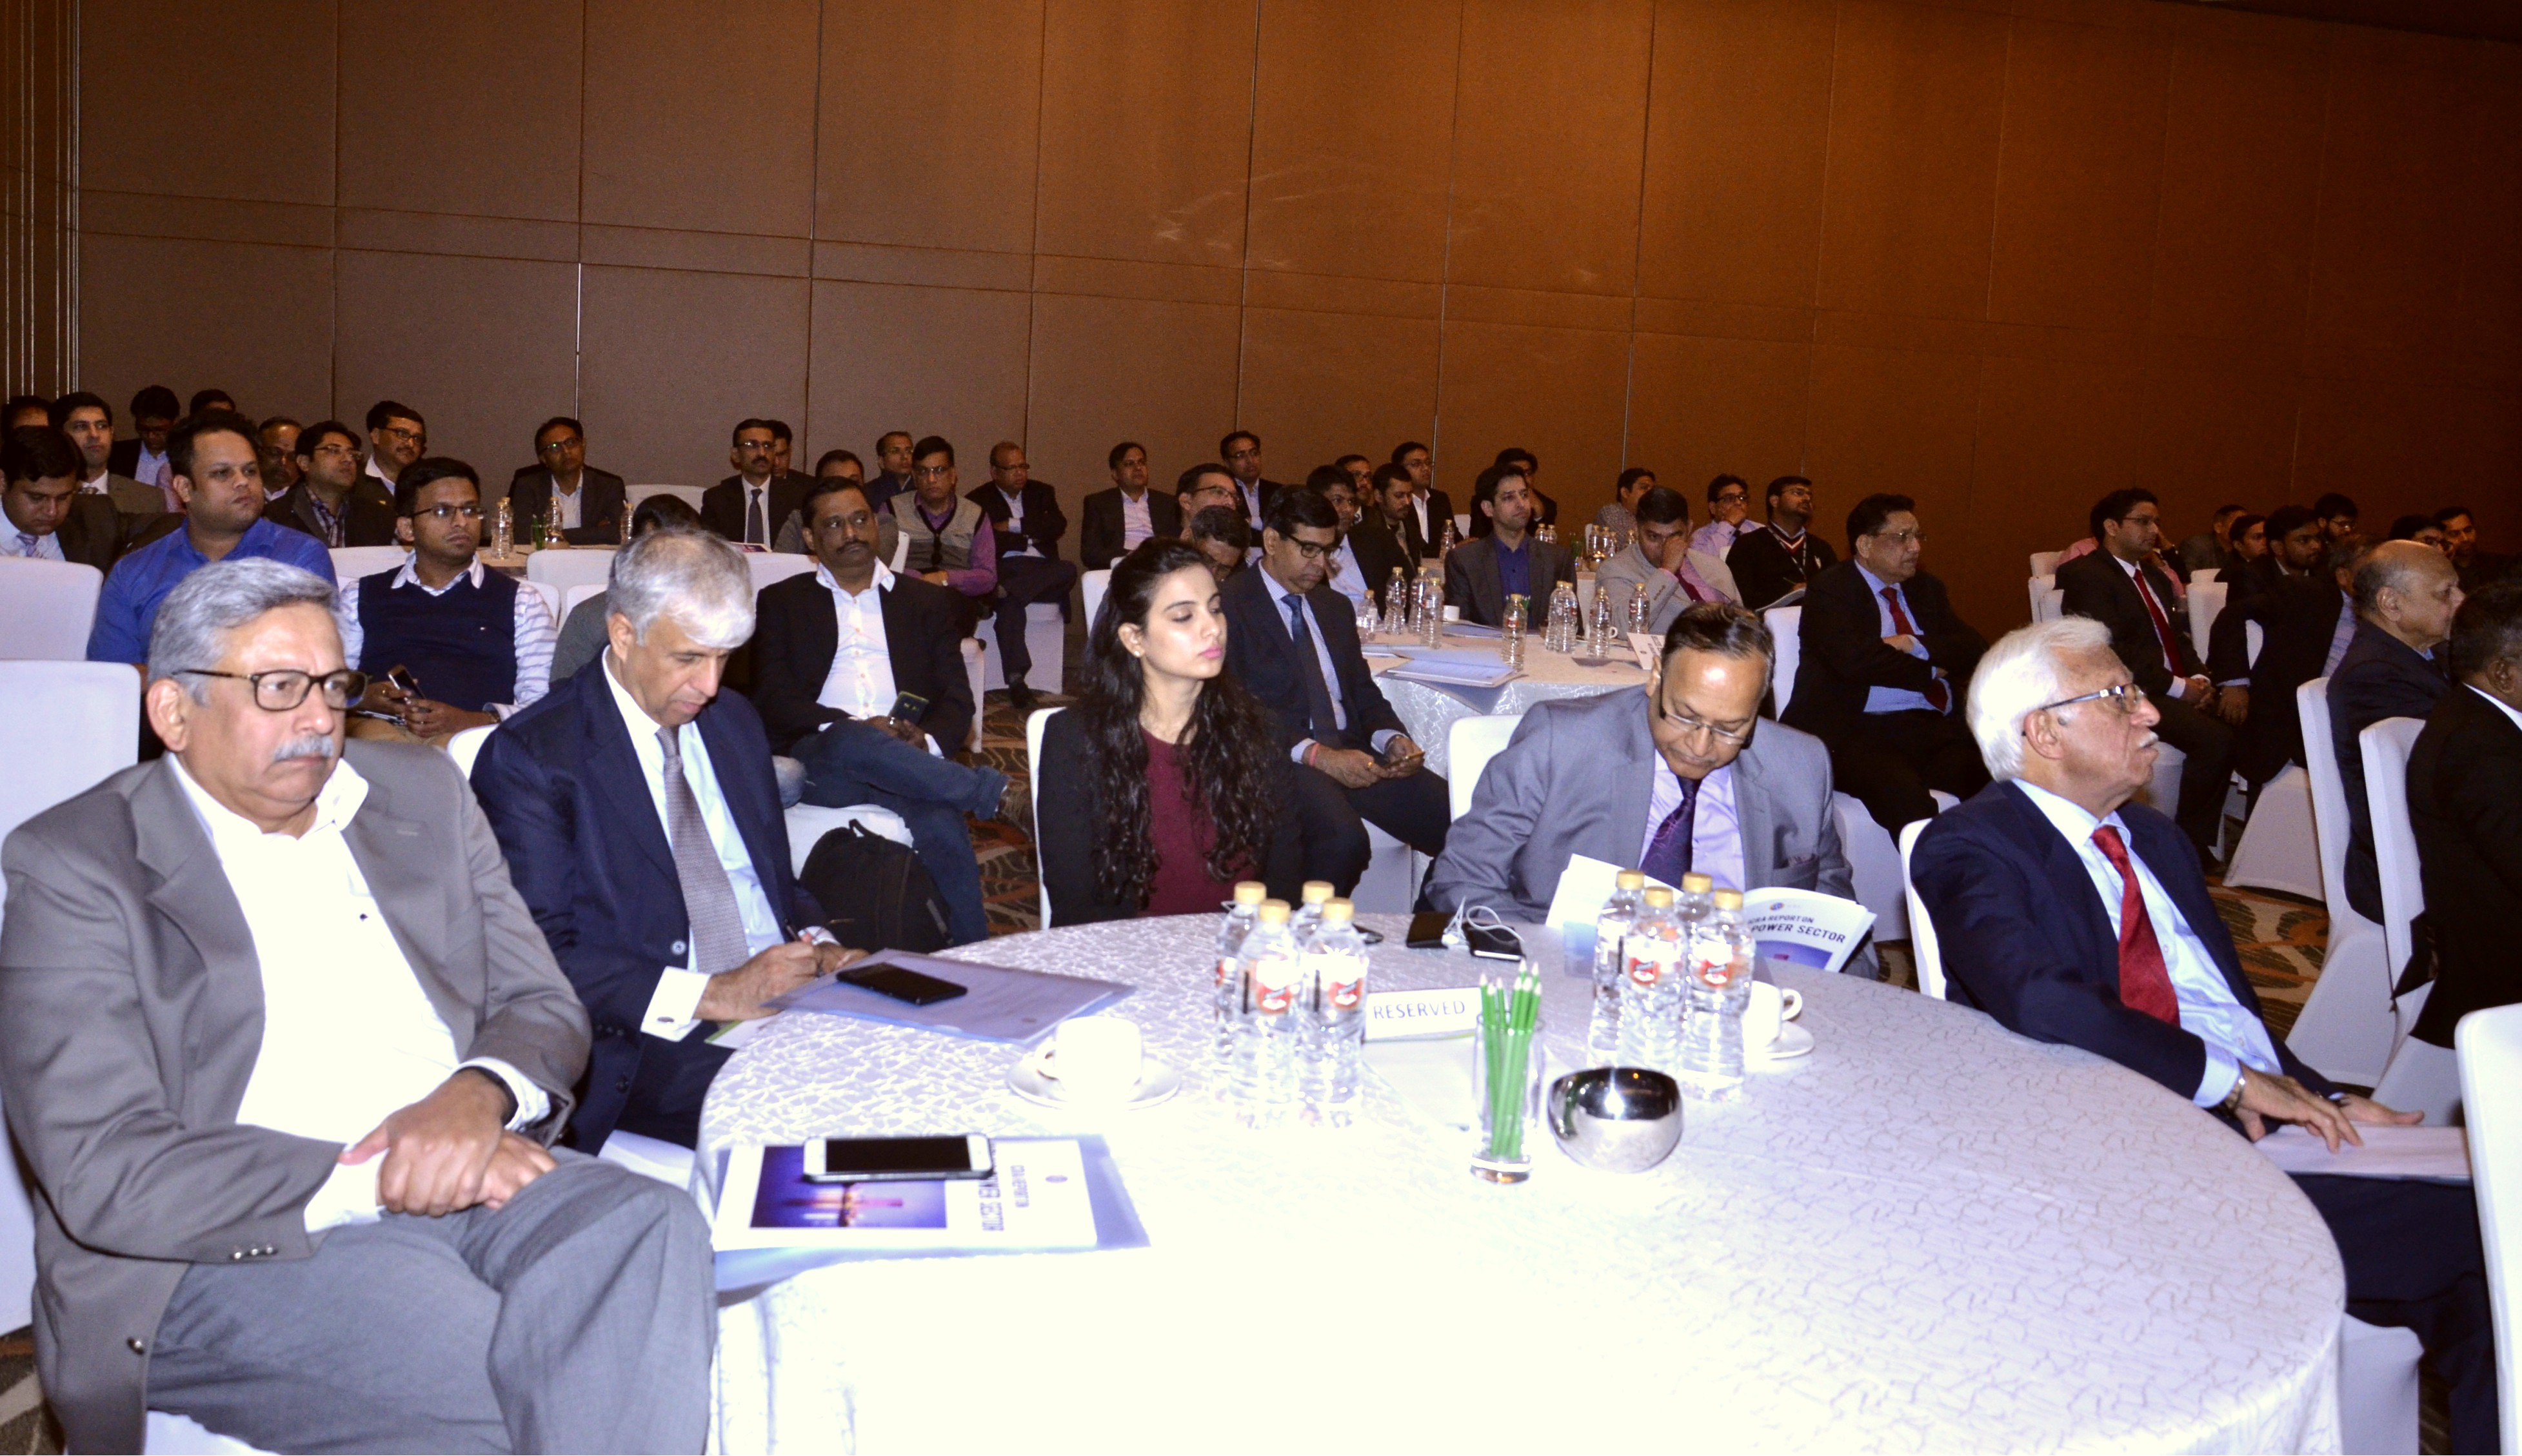 Audience along with the Panellists listening to the Keynote Speech by Dr. A.K. Verma